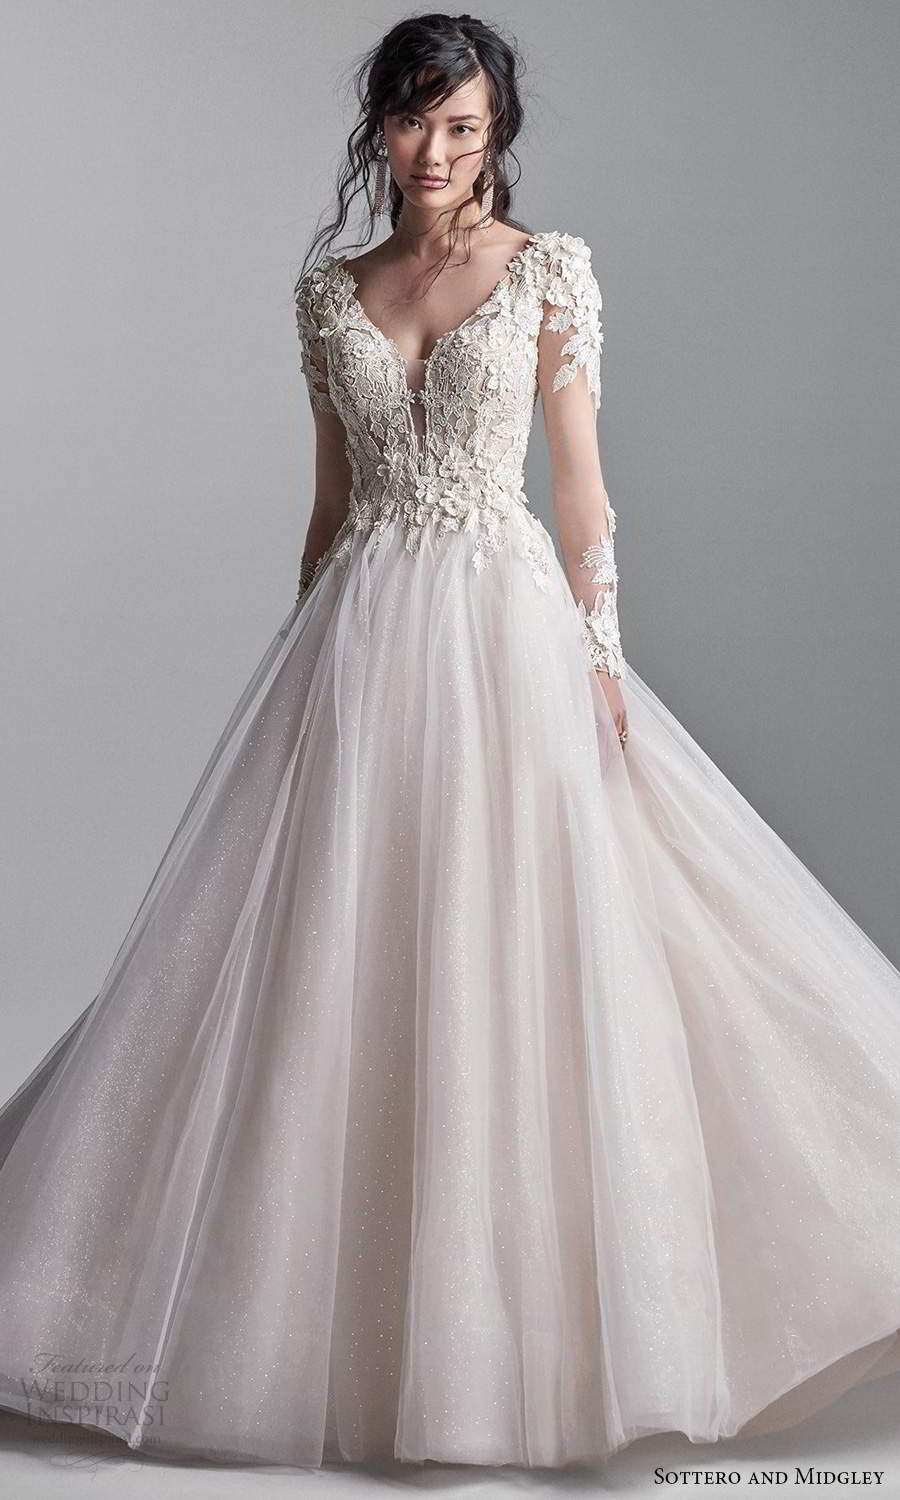 sottero midgley fall 2020 bridal illusion long sleeves plunging v neckline embellished bodice a line ball gown wedding dress blush chapel train (1) mv